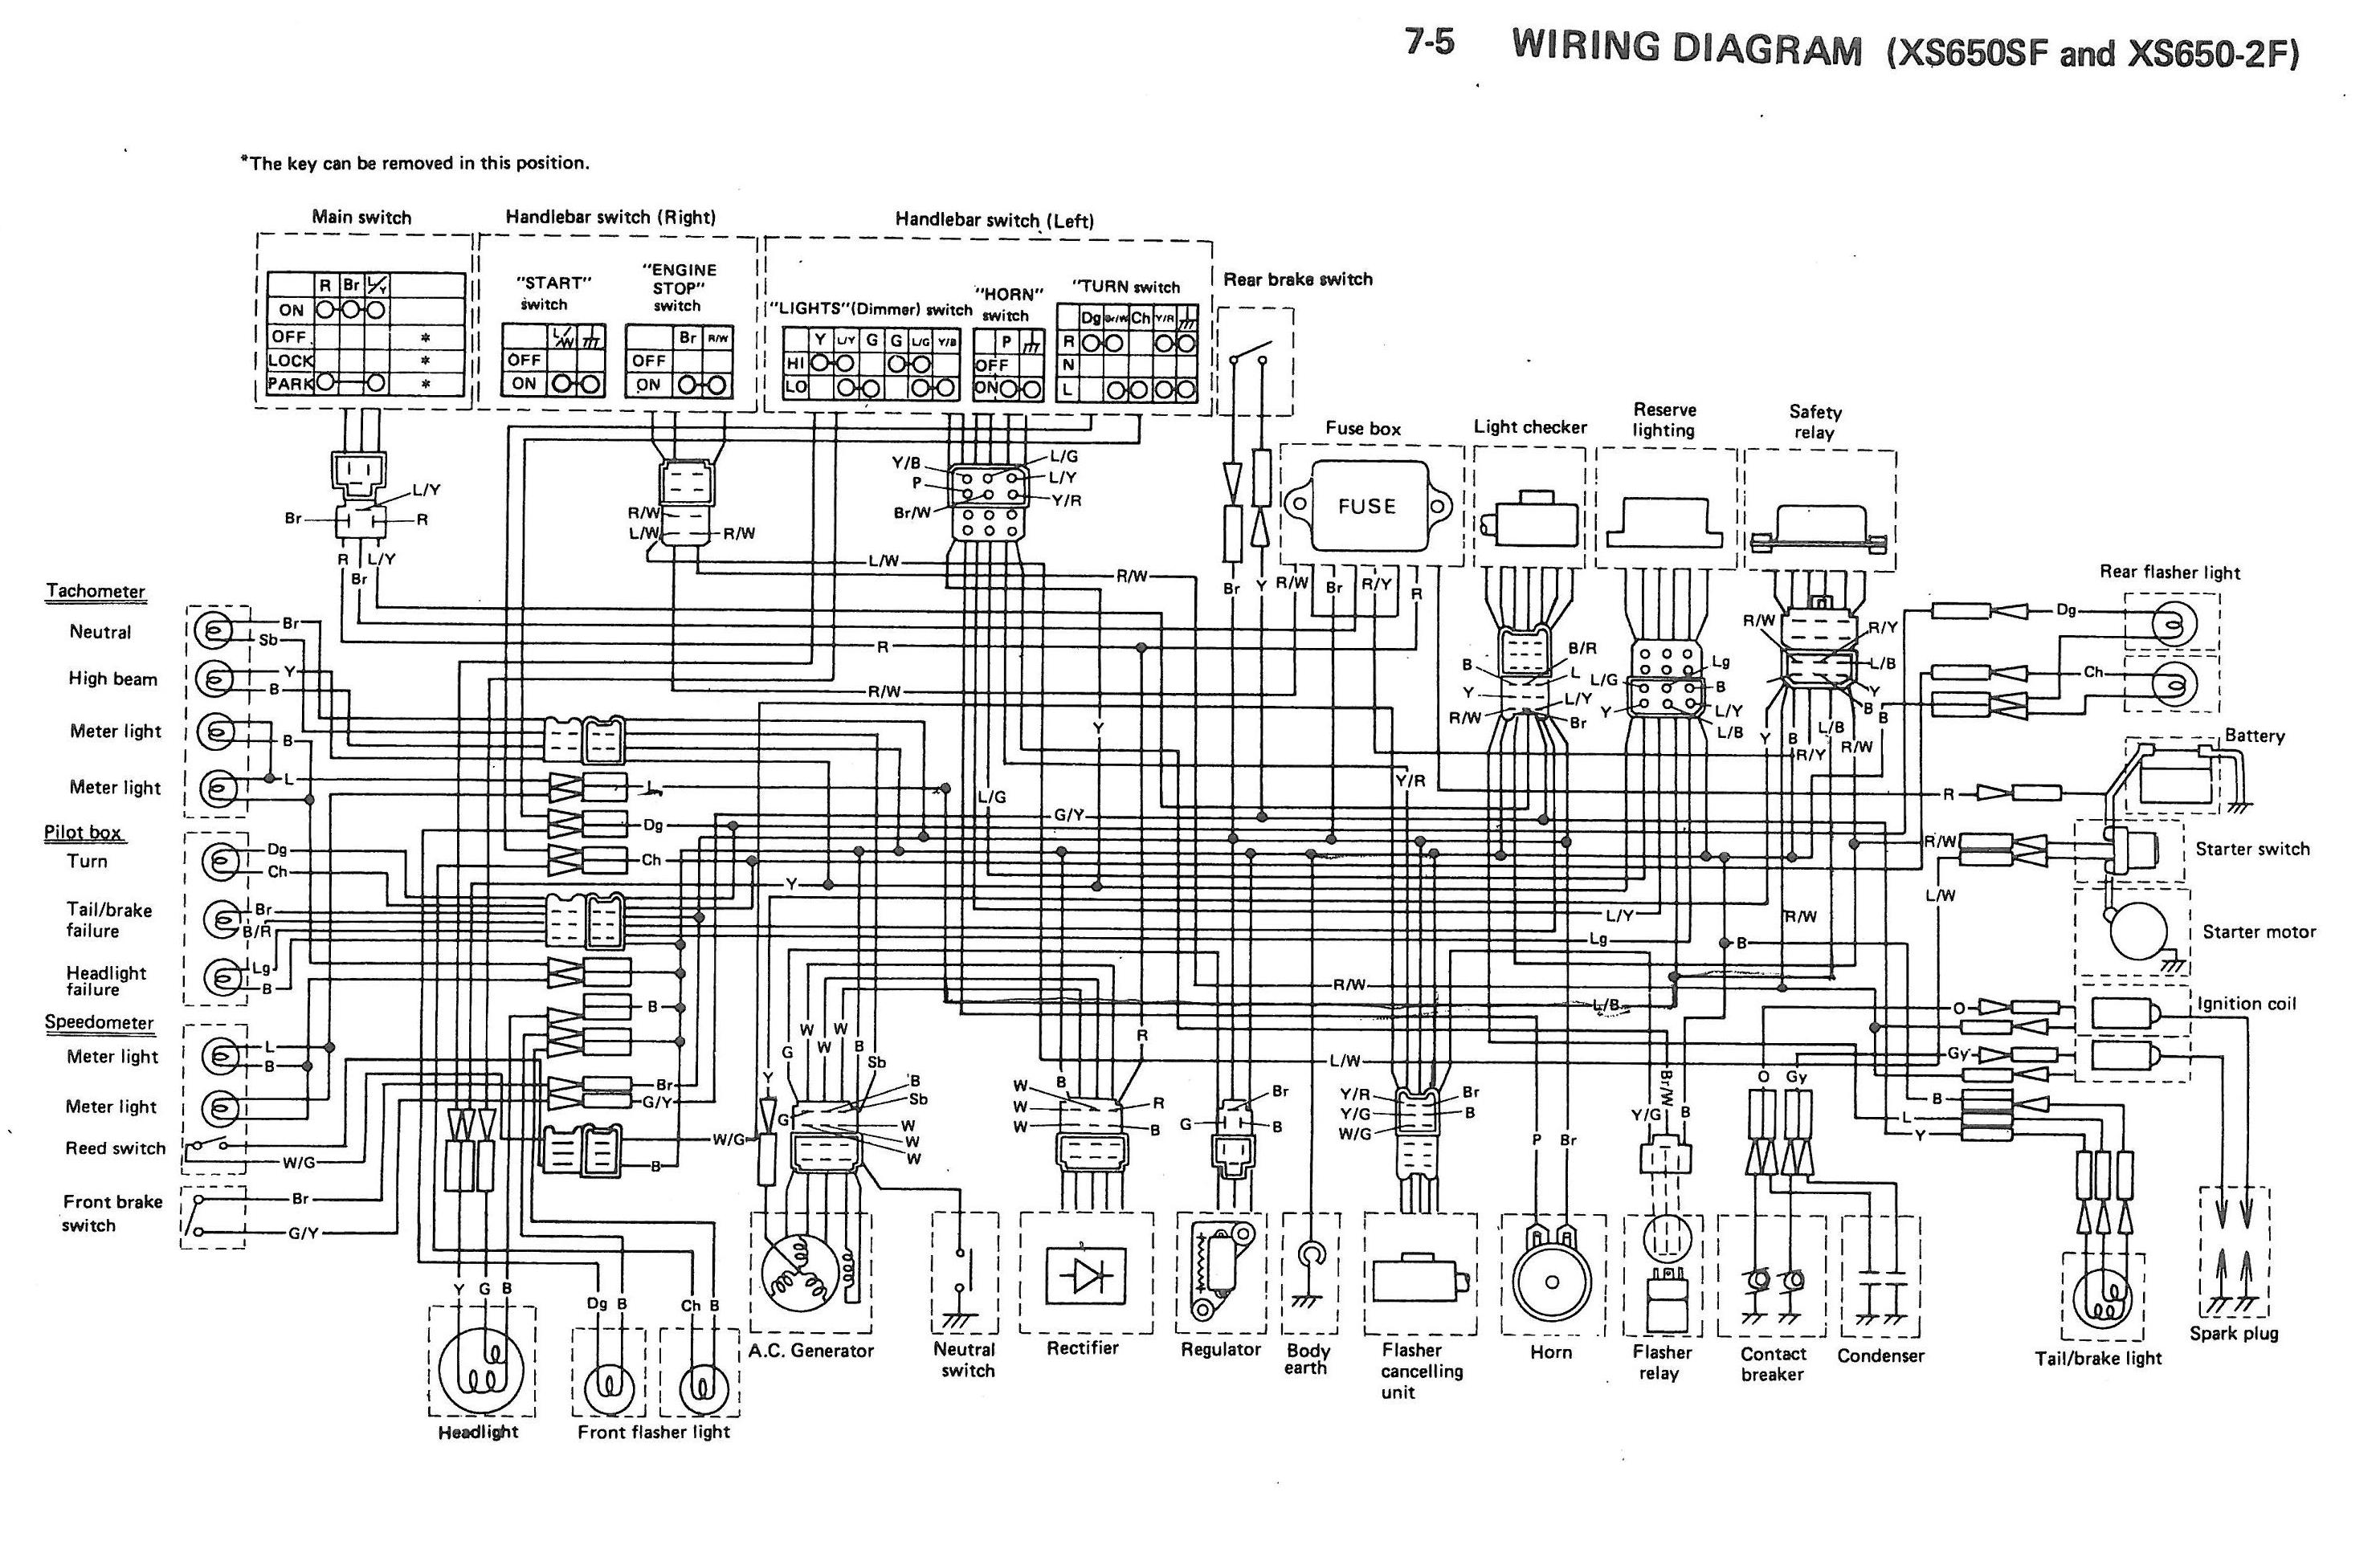 79 xs650sf 2f xs650 79 xs650sf 2f wiring diagrams thexscafe yamaha 650 wiring diagram no battery at n-0.co